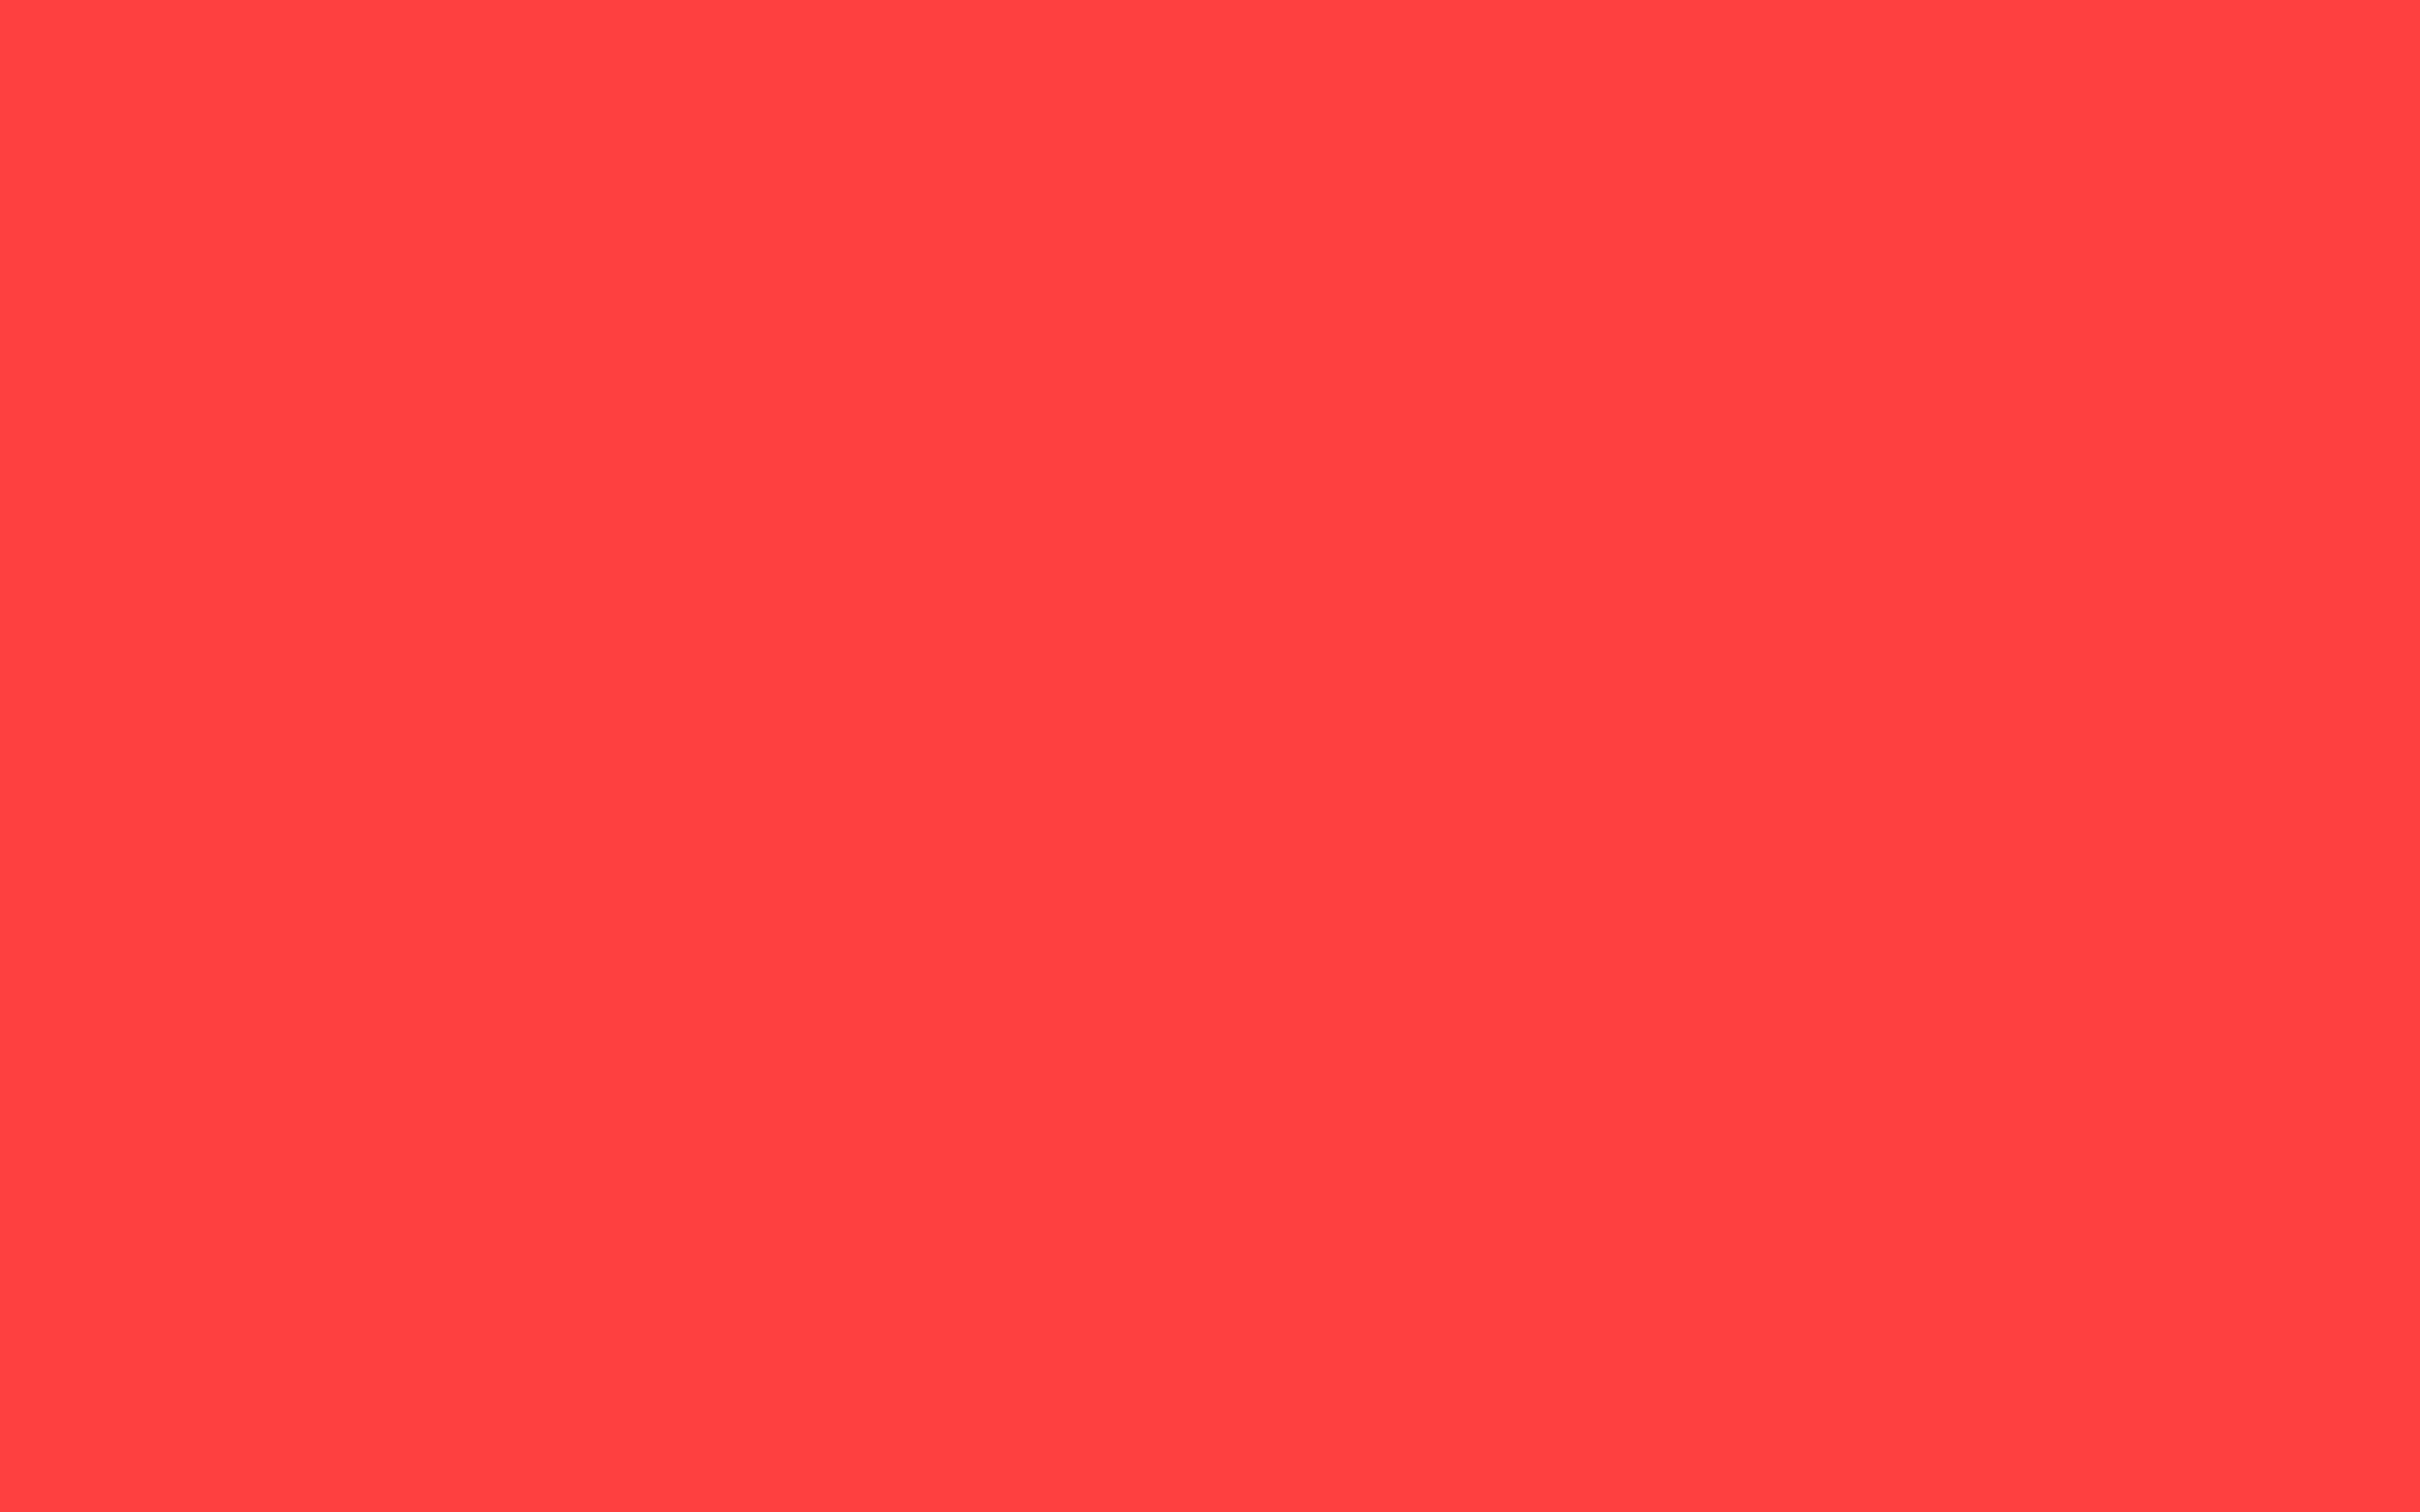 2560x1600 Coral Red Solid Color Background